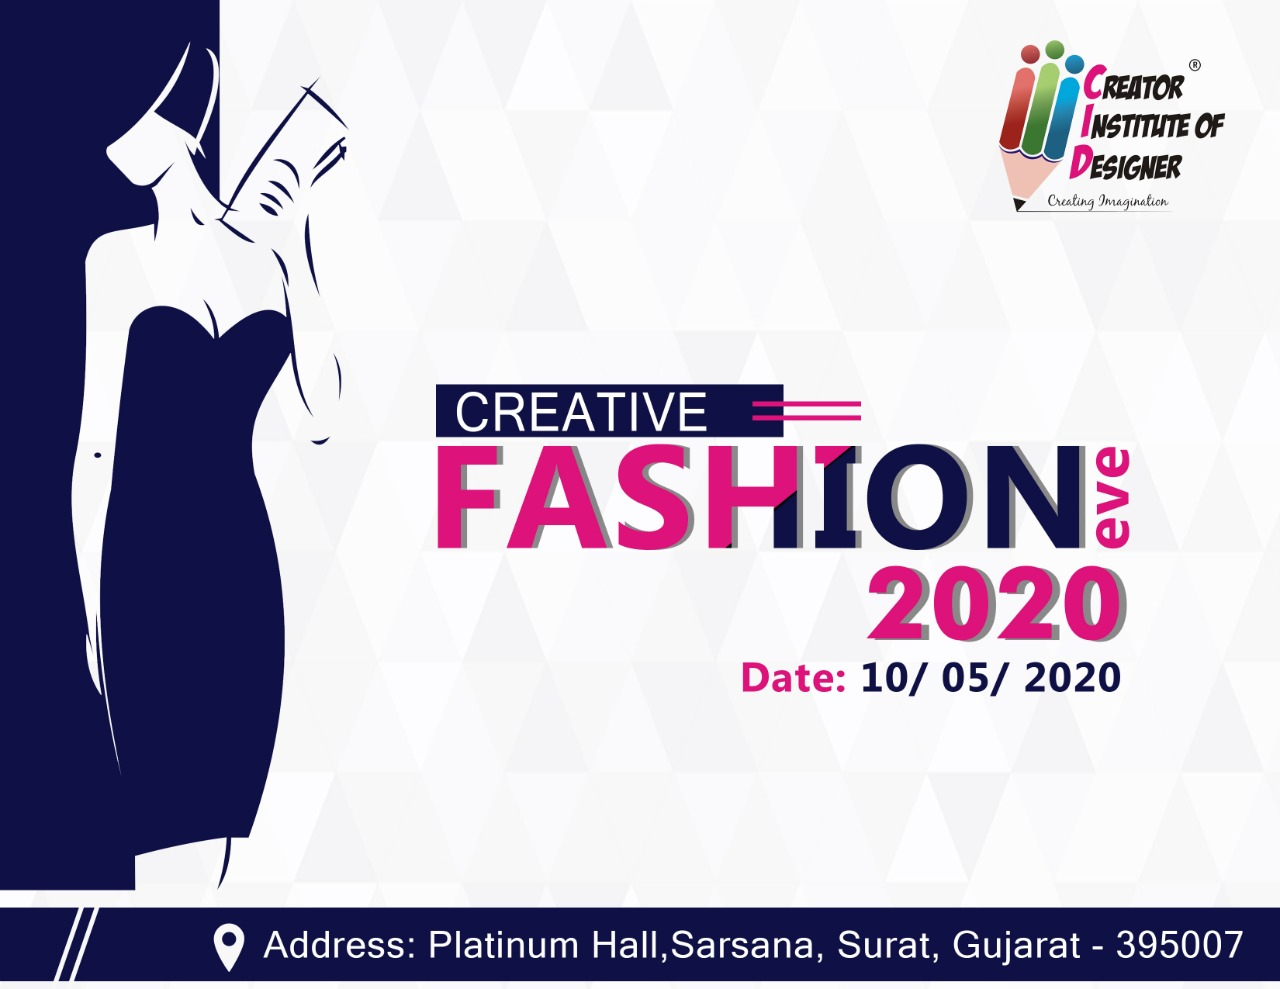 best fashion designing institute in surat, fashion designing classes in surat, fashion designing colleges in surat, fashion designing institute in surat, fashion designer course in surat.